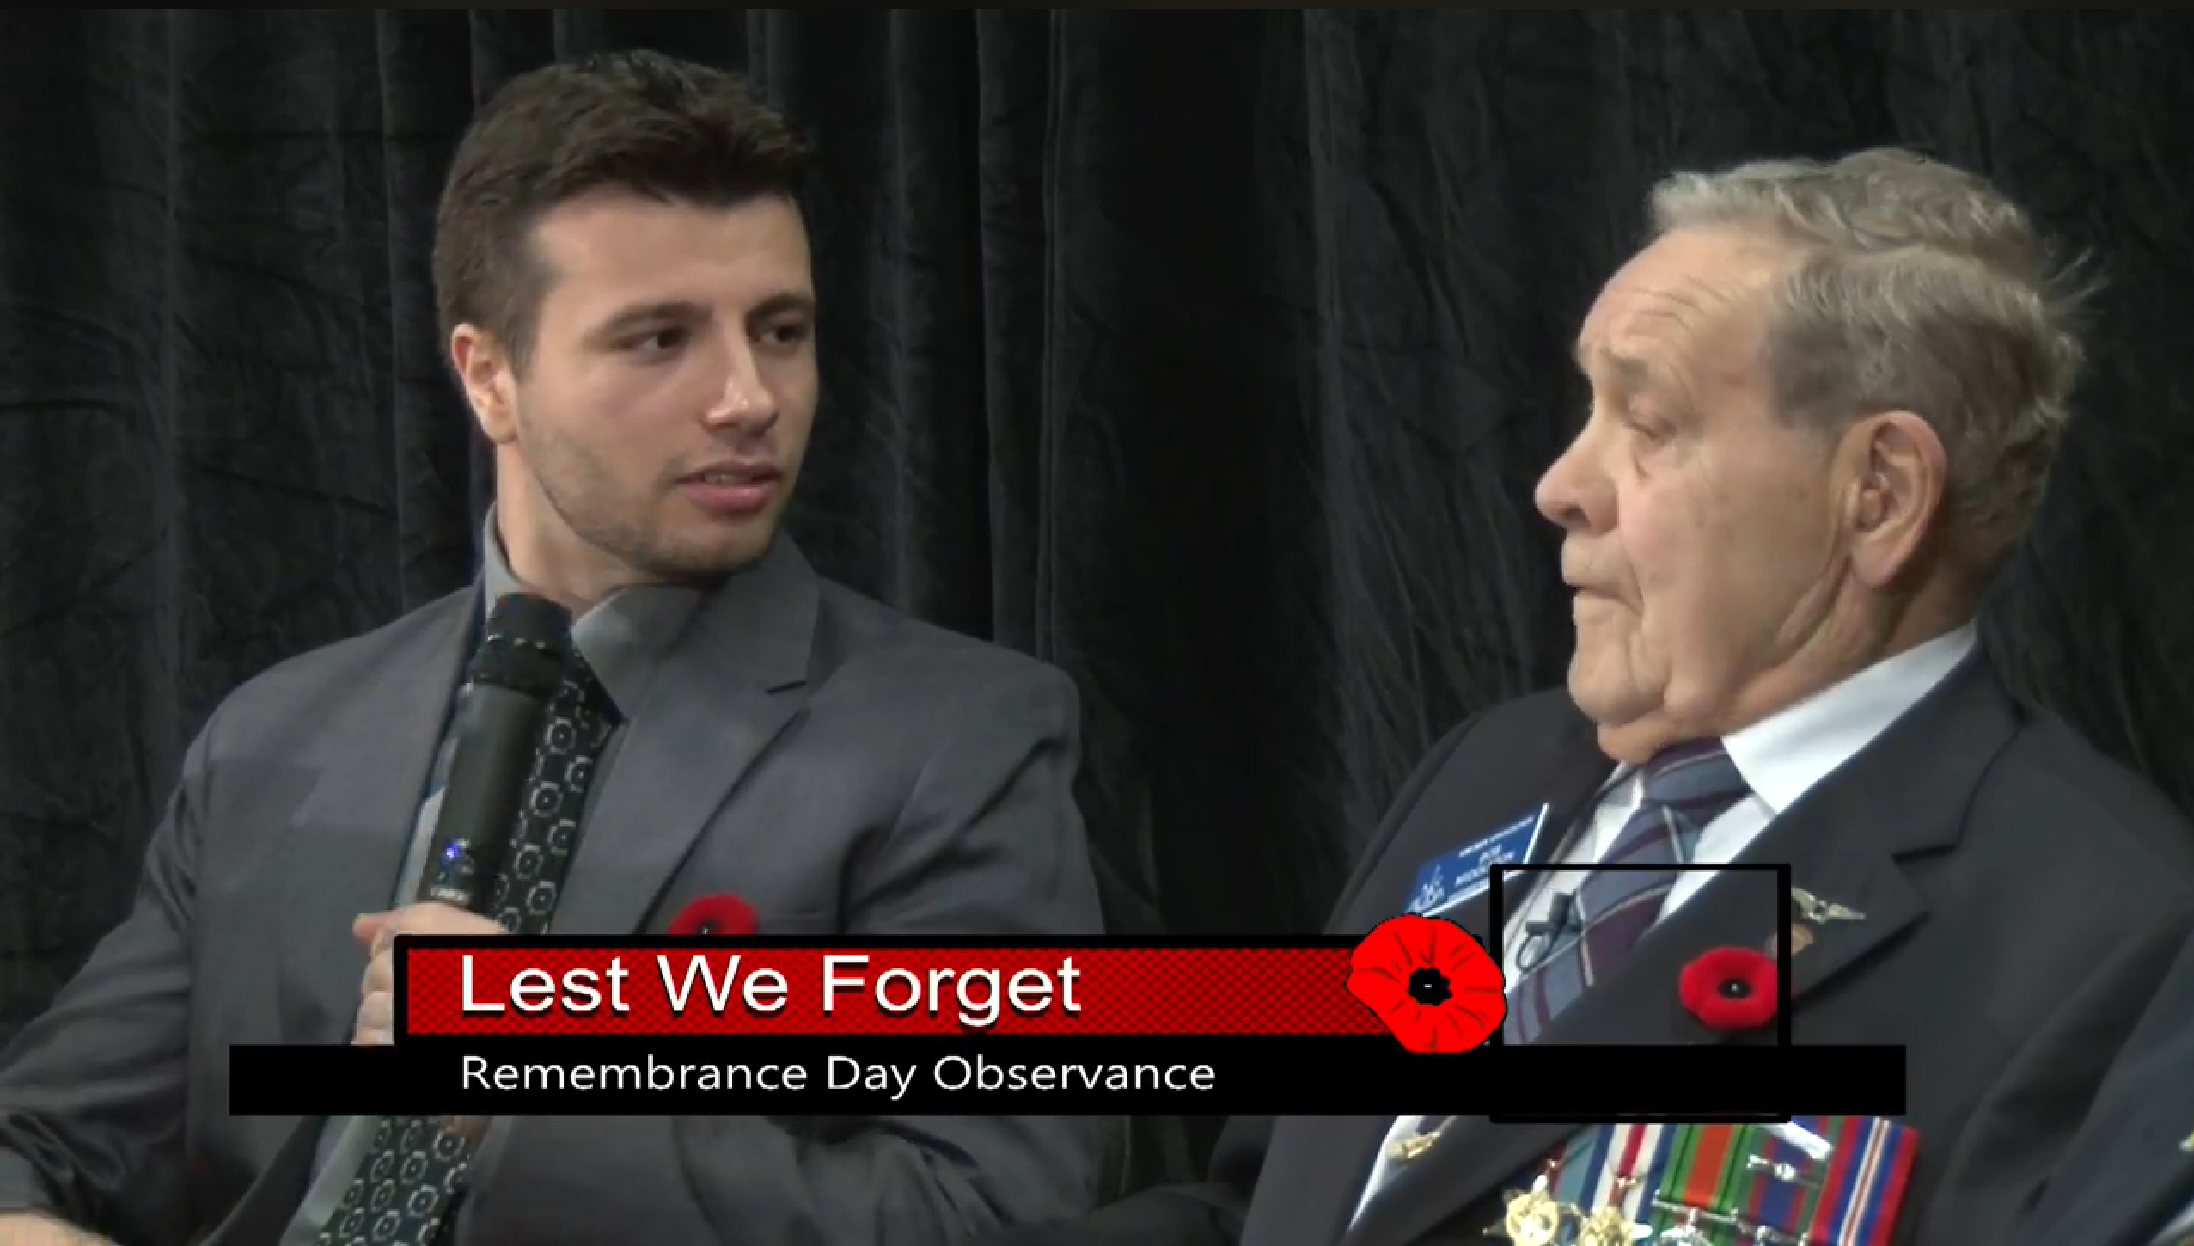 2018 Remembrance Day Observance